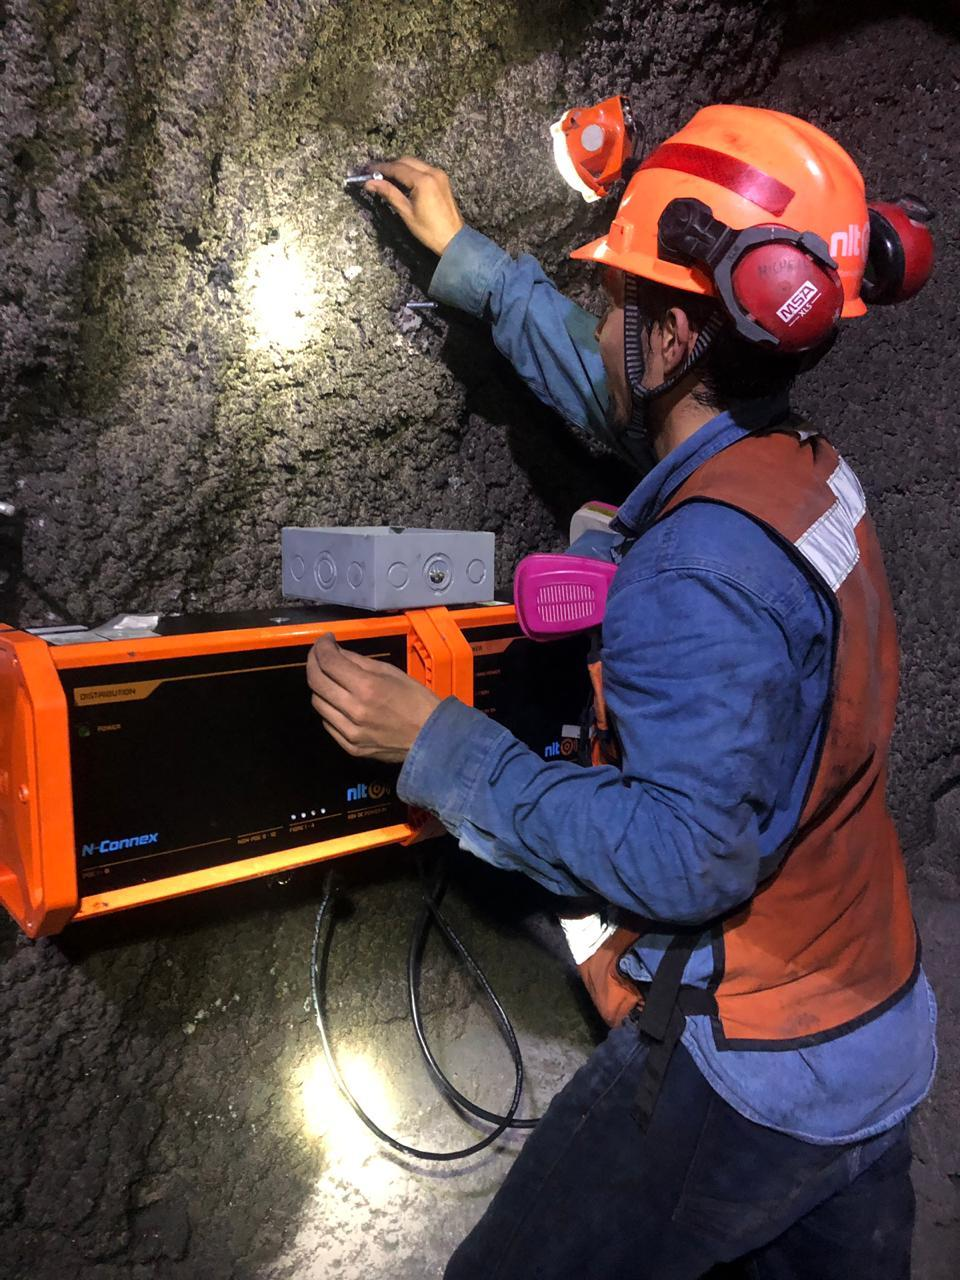 The Top 5 Reasons Mines Put Tracking & Proximity Tags in Cap Lamps